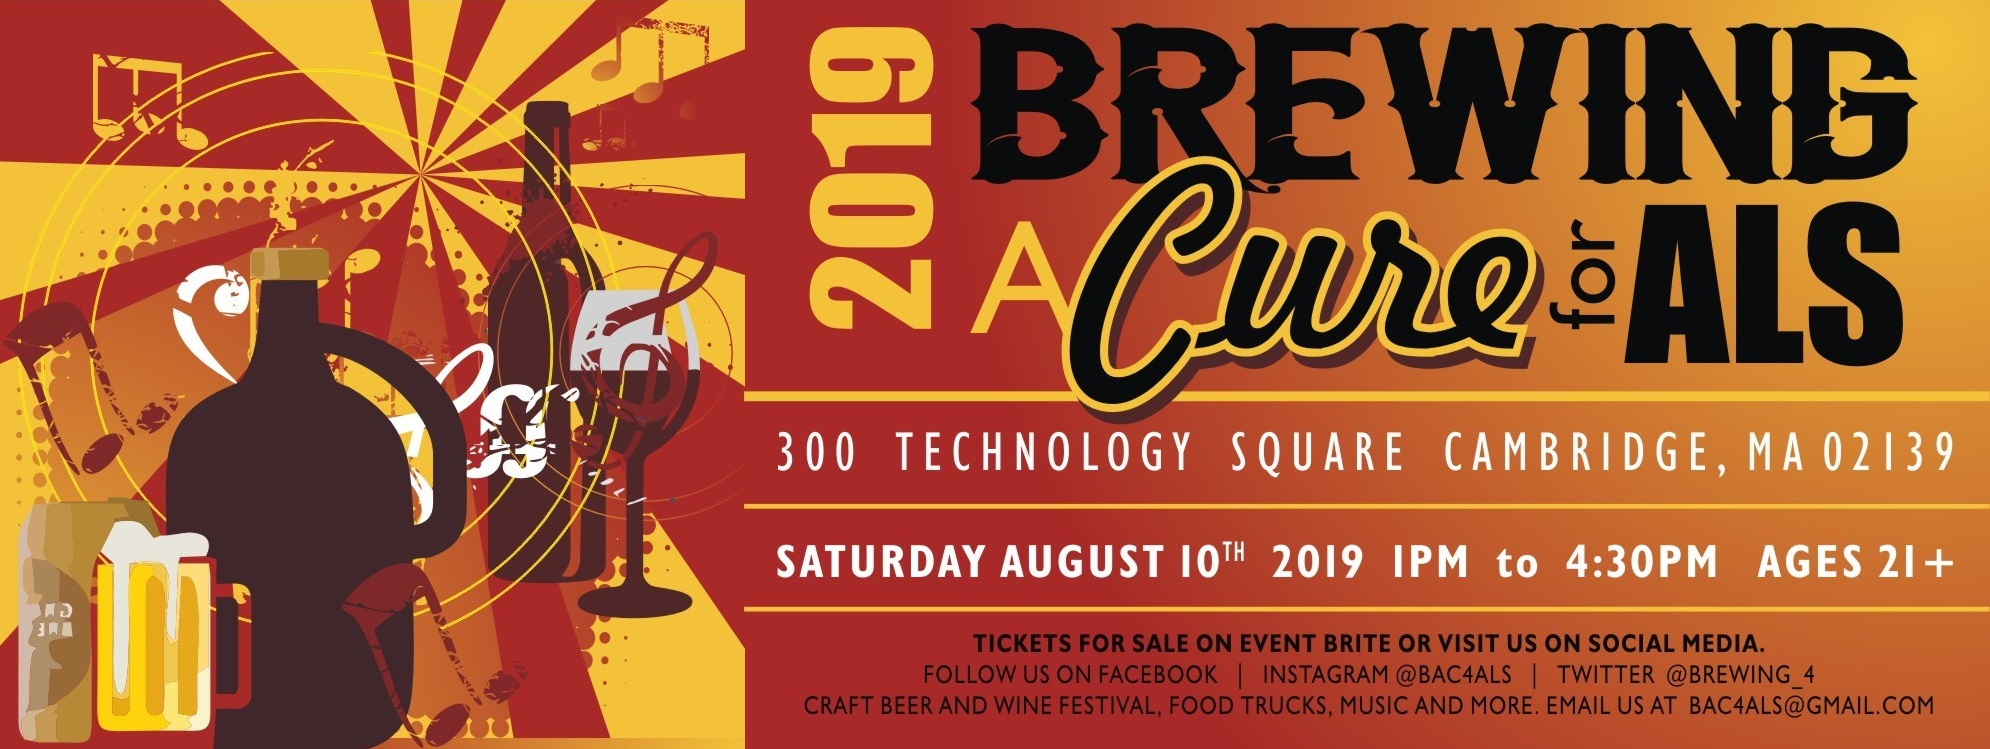 Brewing a Cure 4 ALS - Aug 10